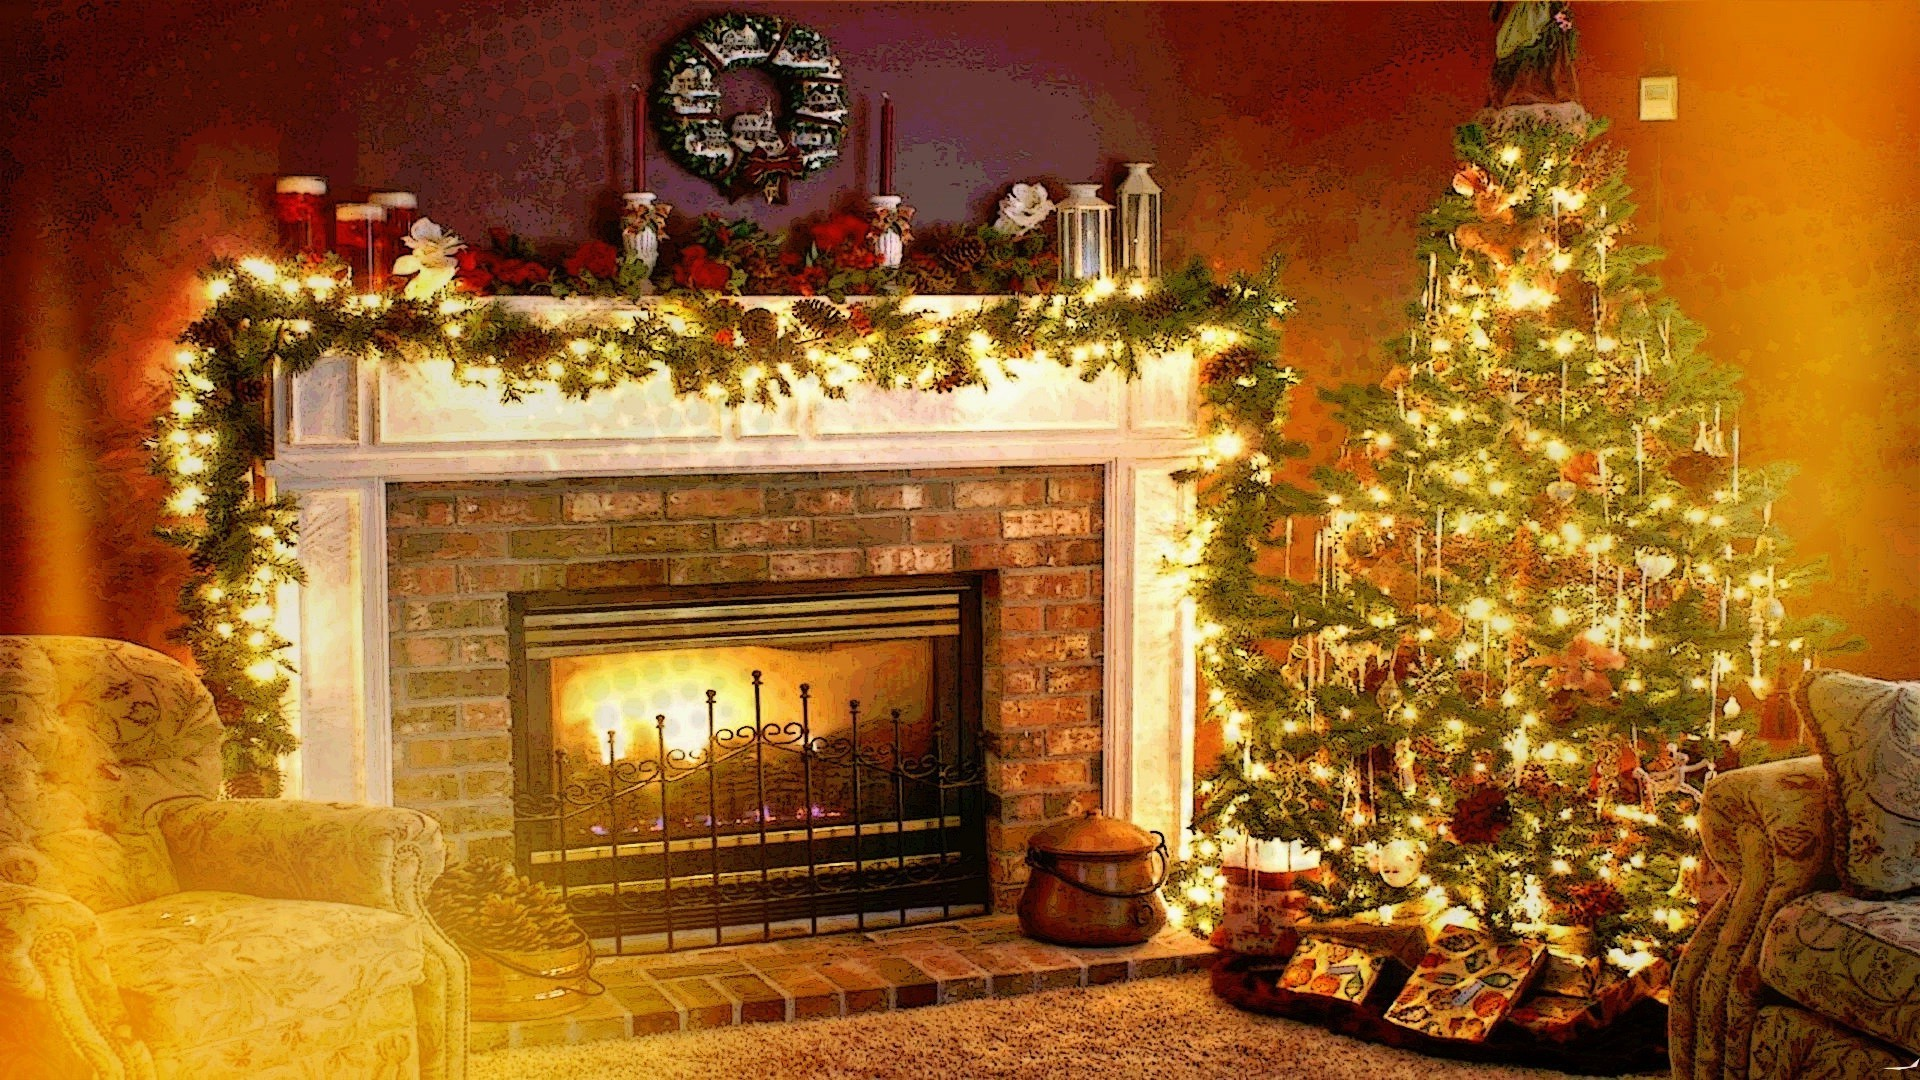 Res: 1920x1080, Christmas fireplace ...